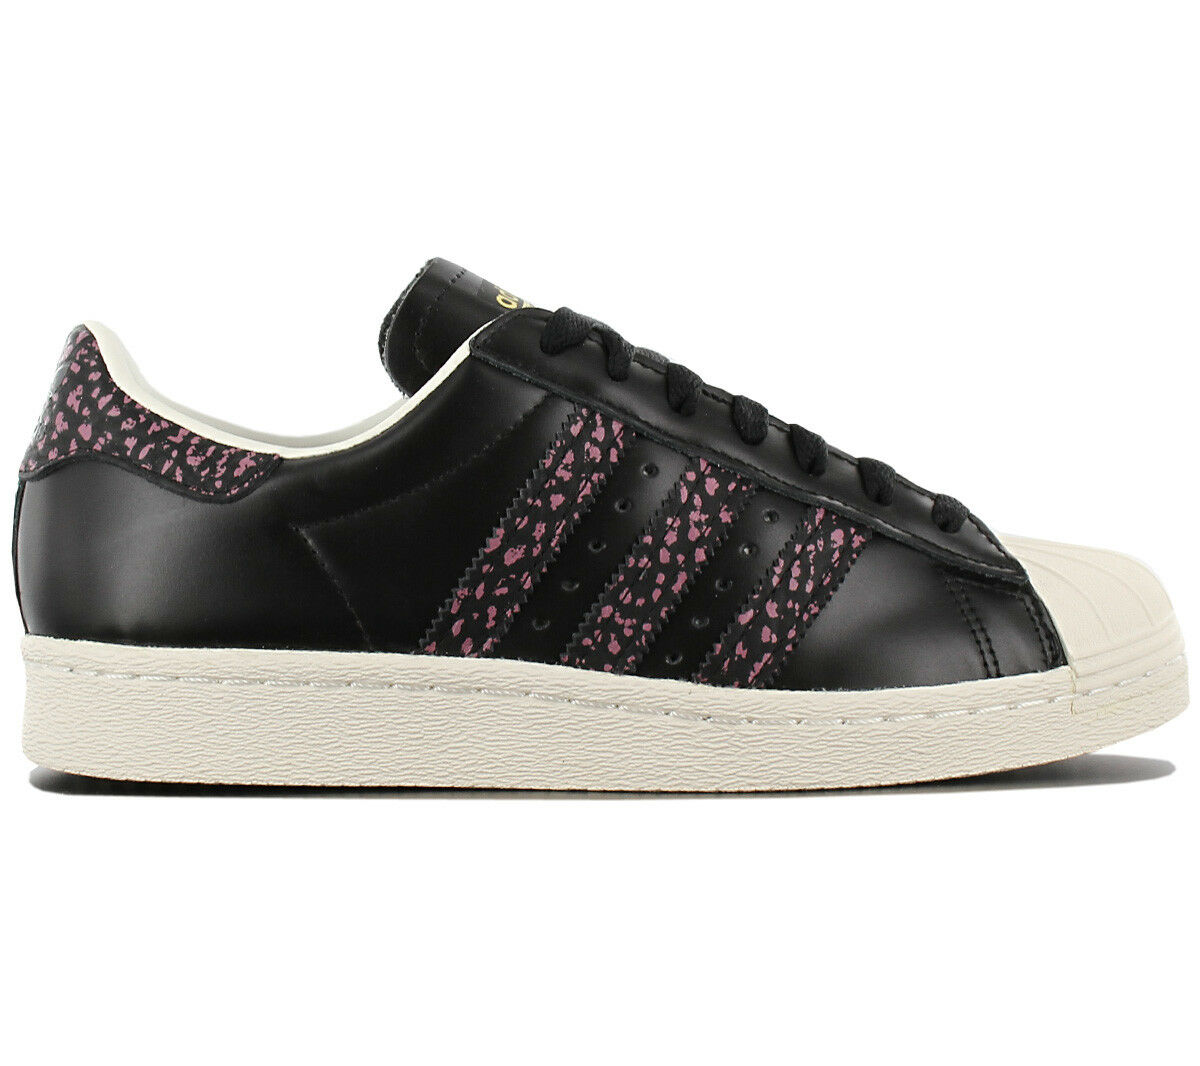 Adidas Originals Superstar 80s Baskets Femme Fashion Chaussures Noir Cuir S75846